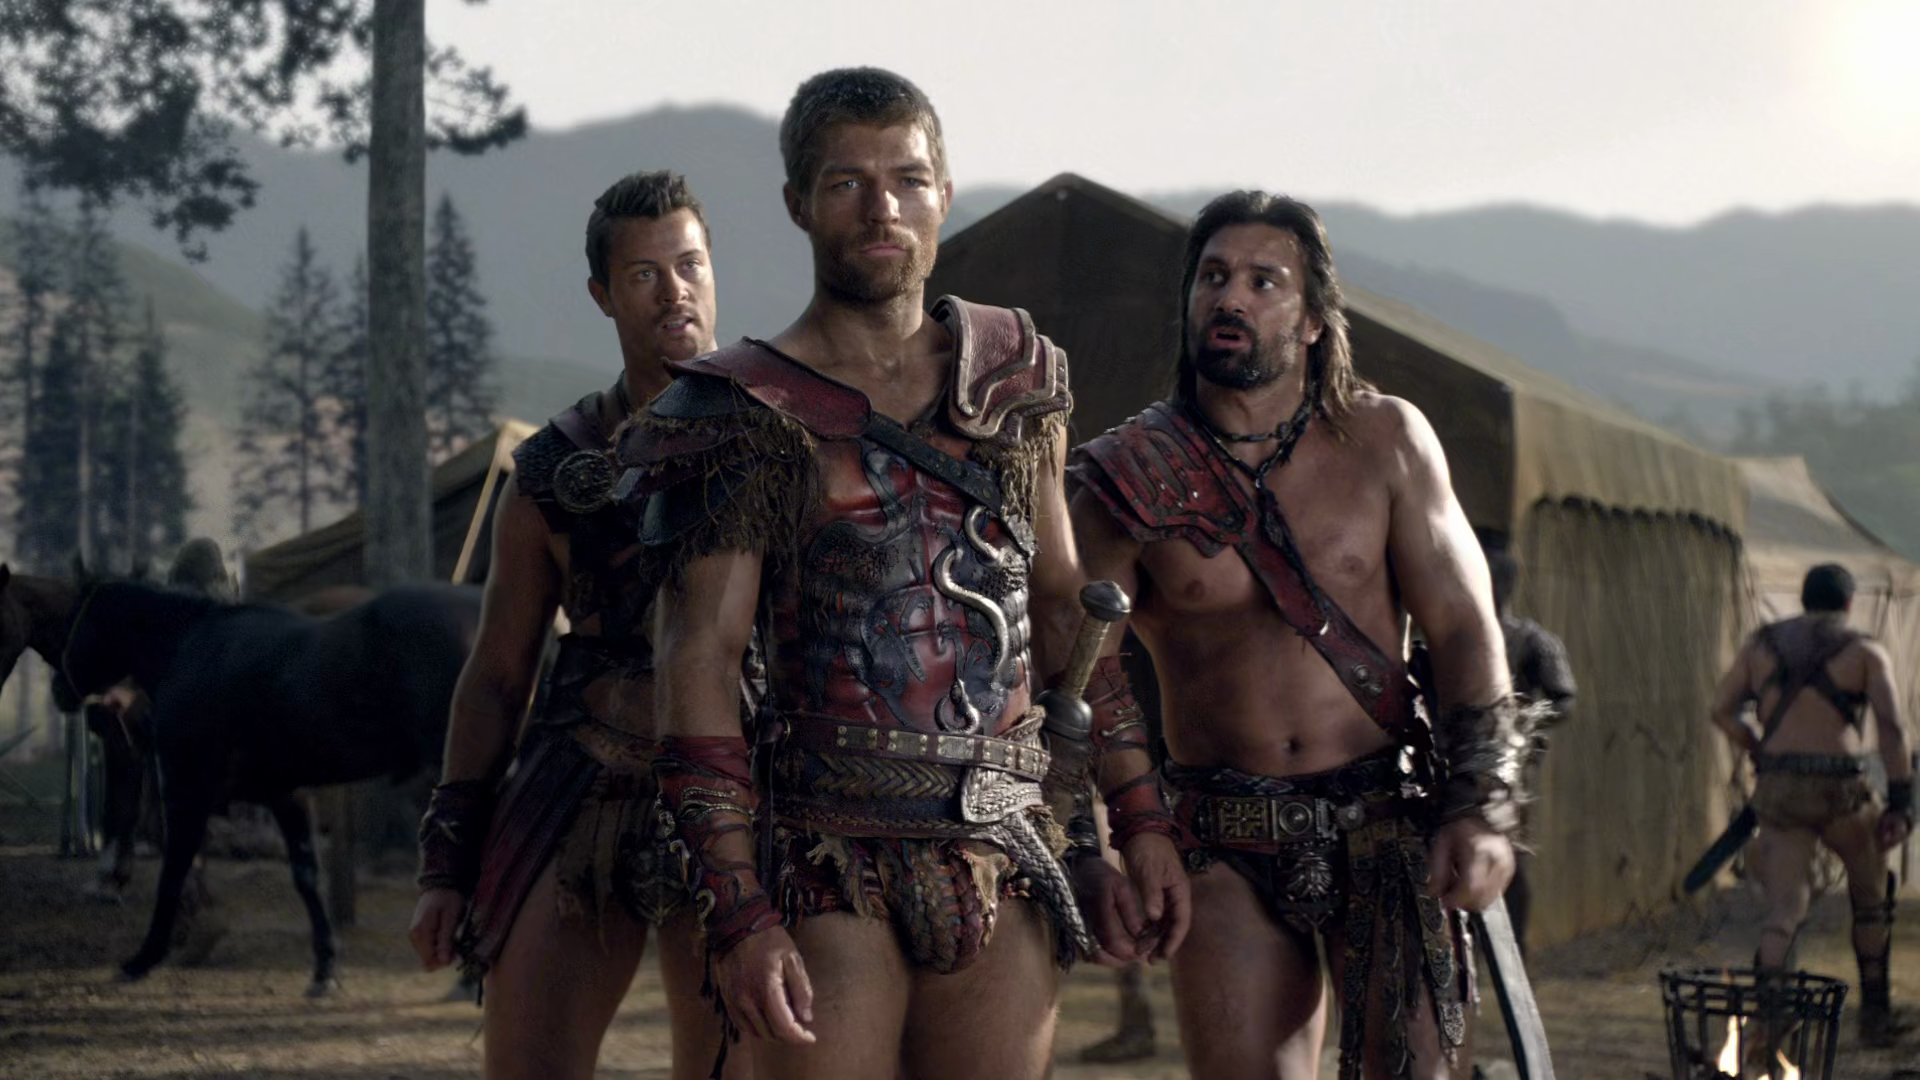 download film spartacus season 3 full episodes